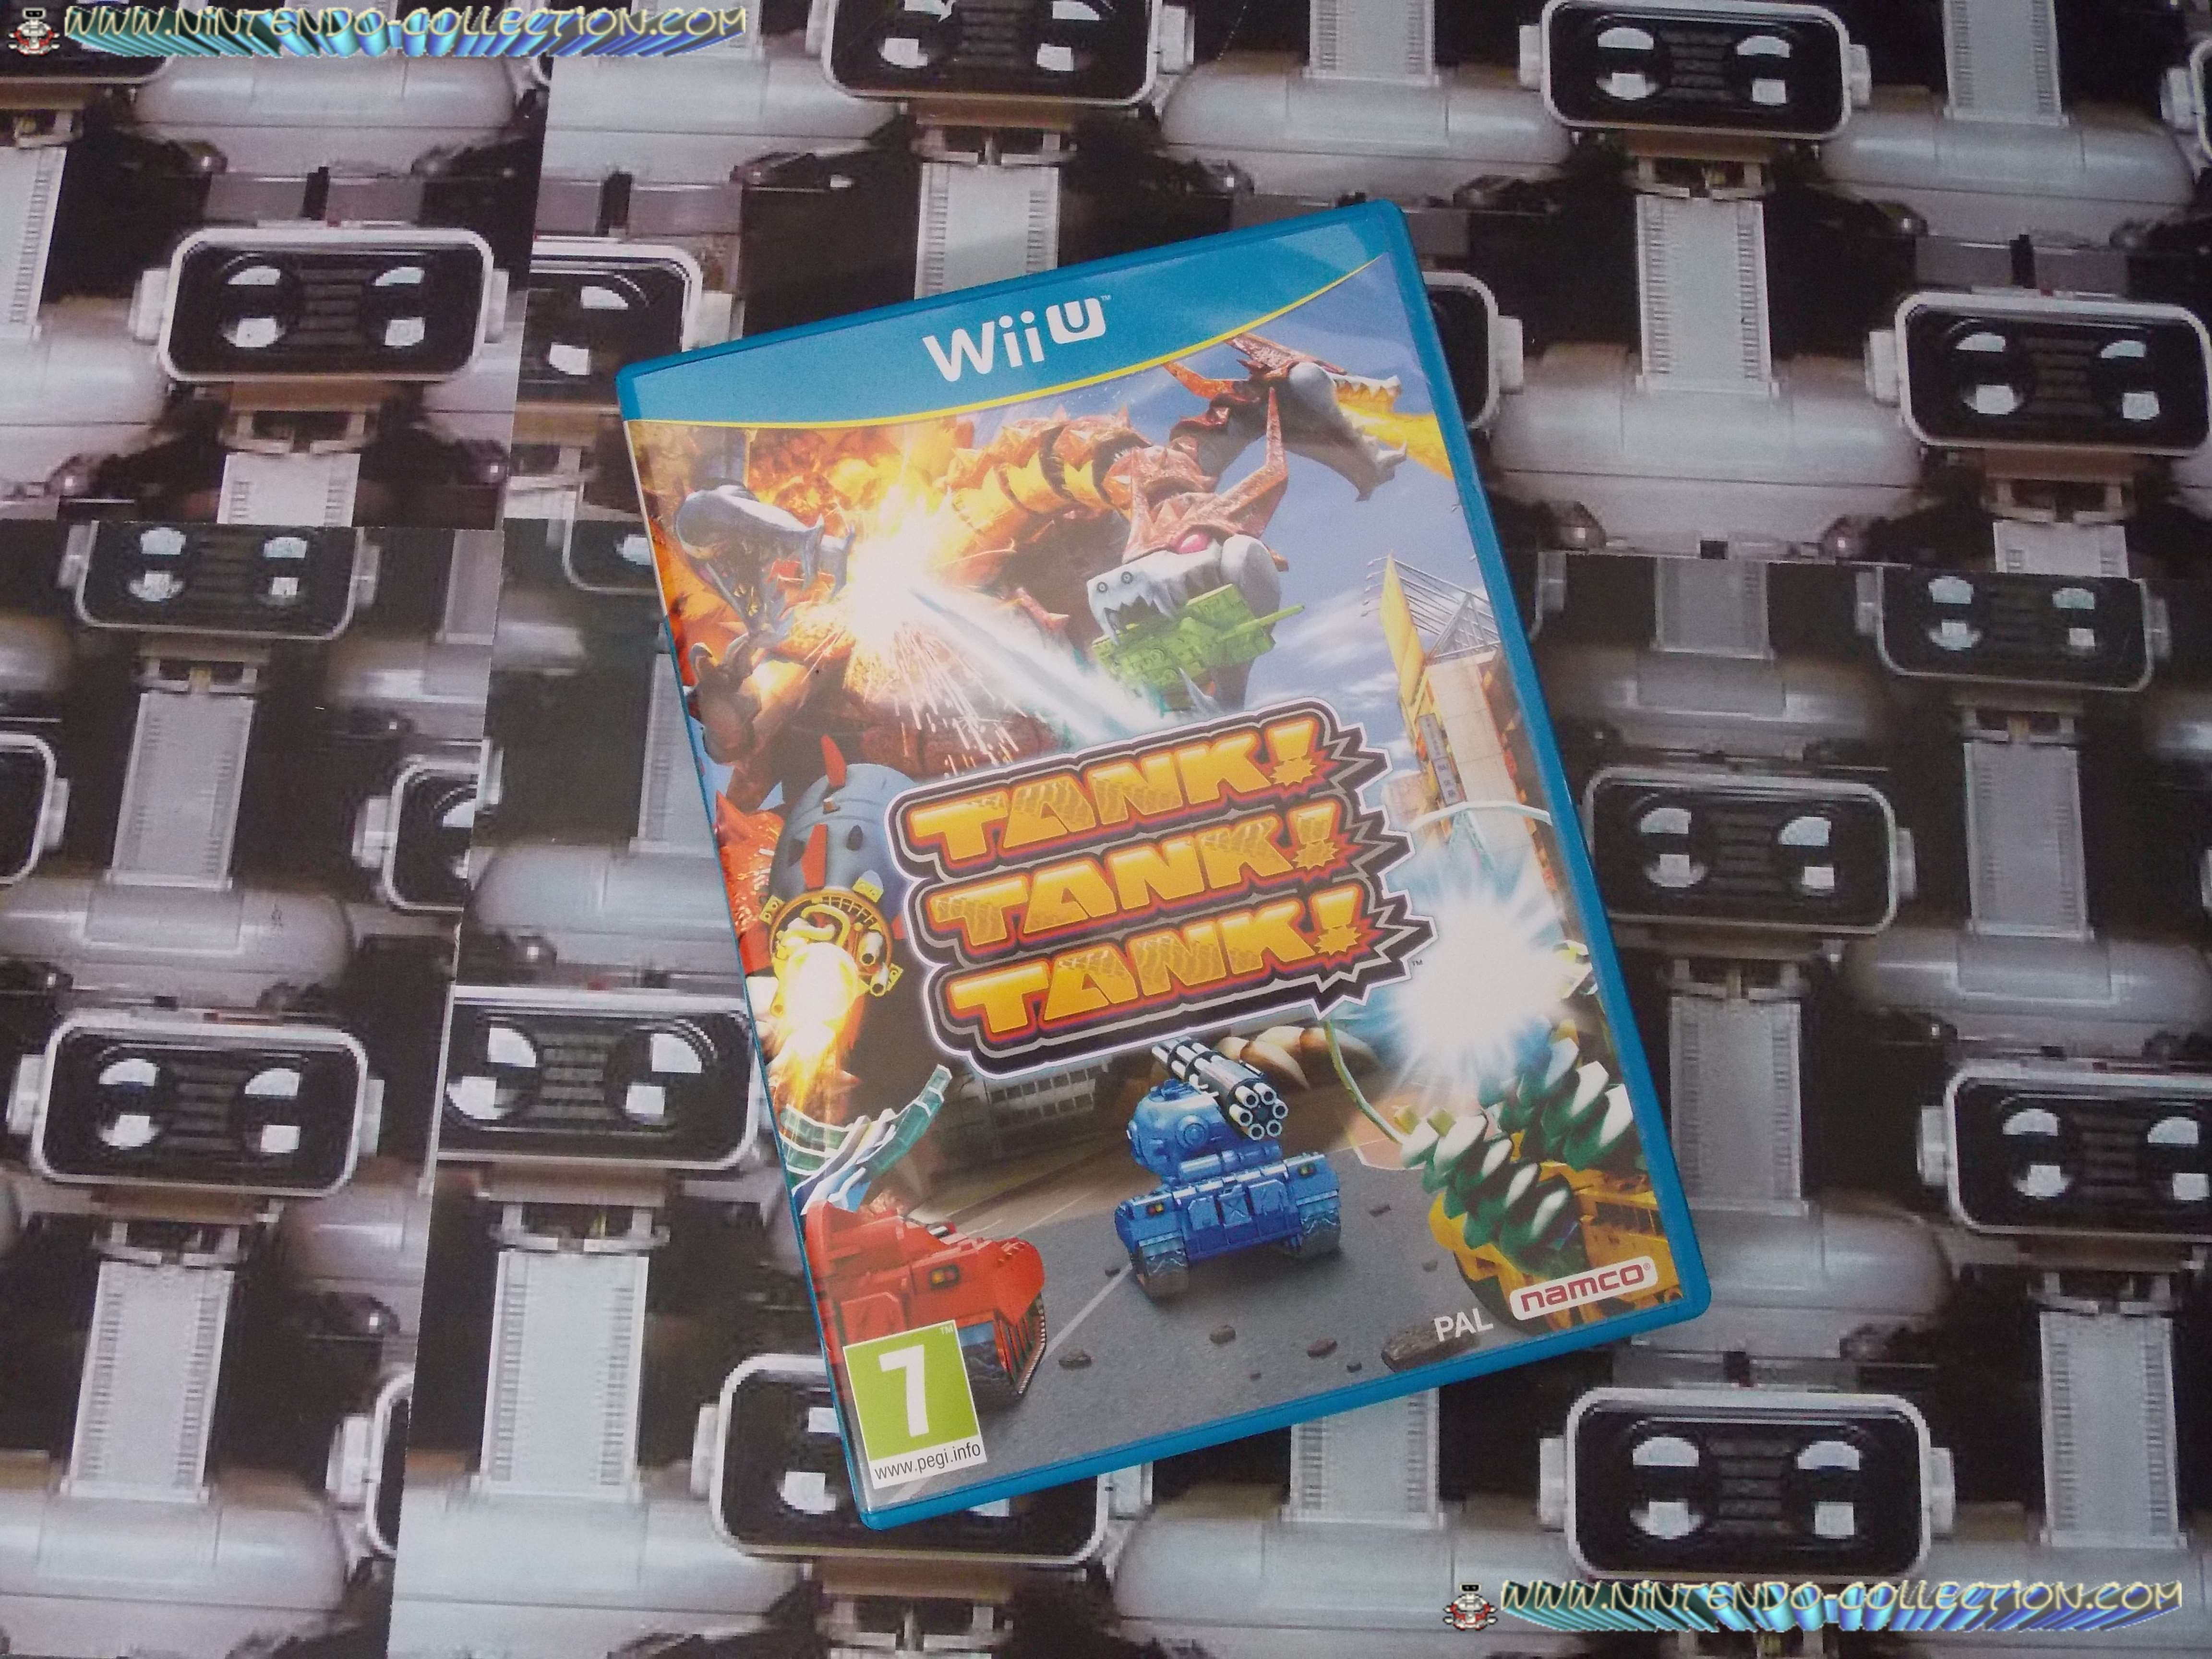 www.nintendo-collection.com - Wii U Game Jeu Tank Tank Tank